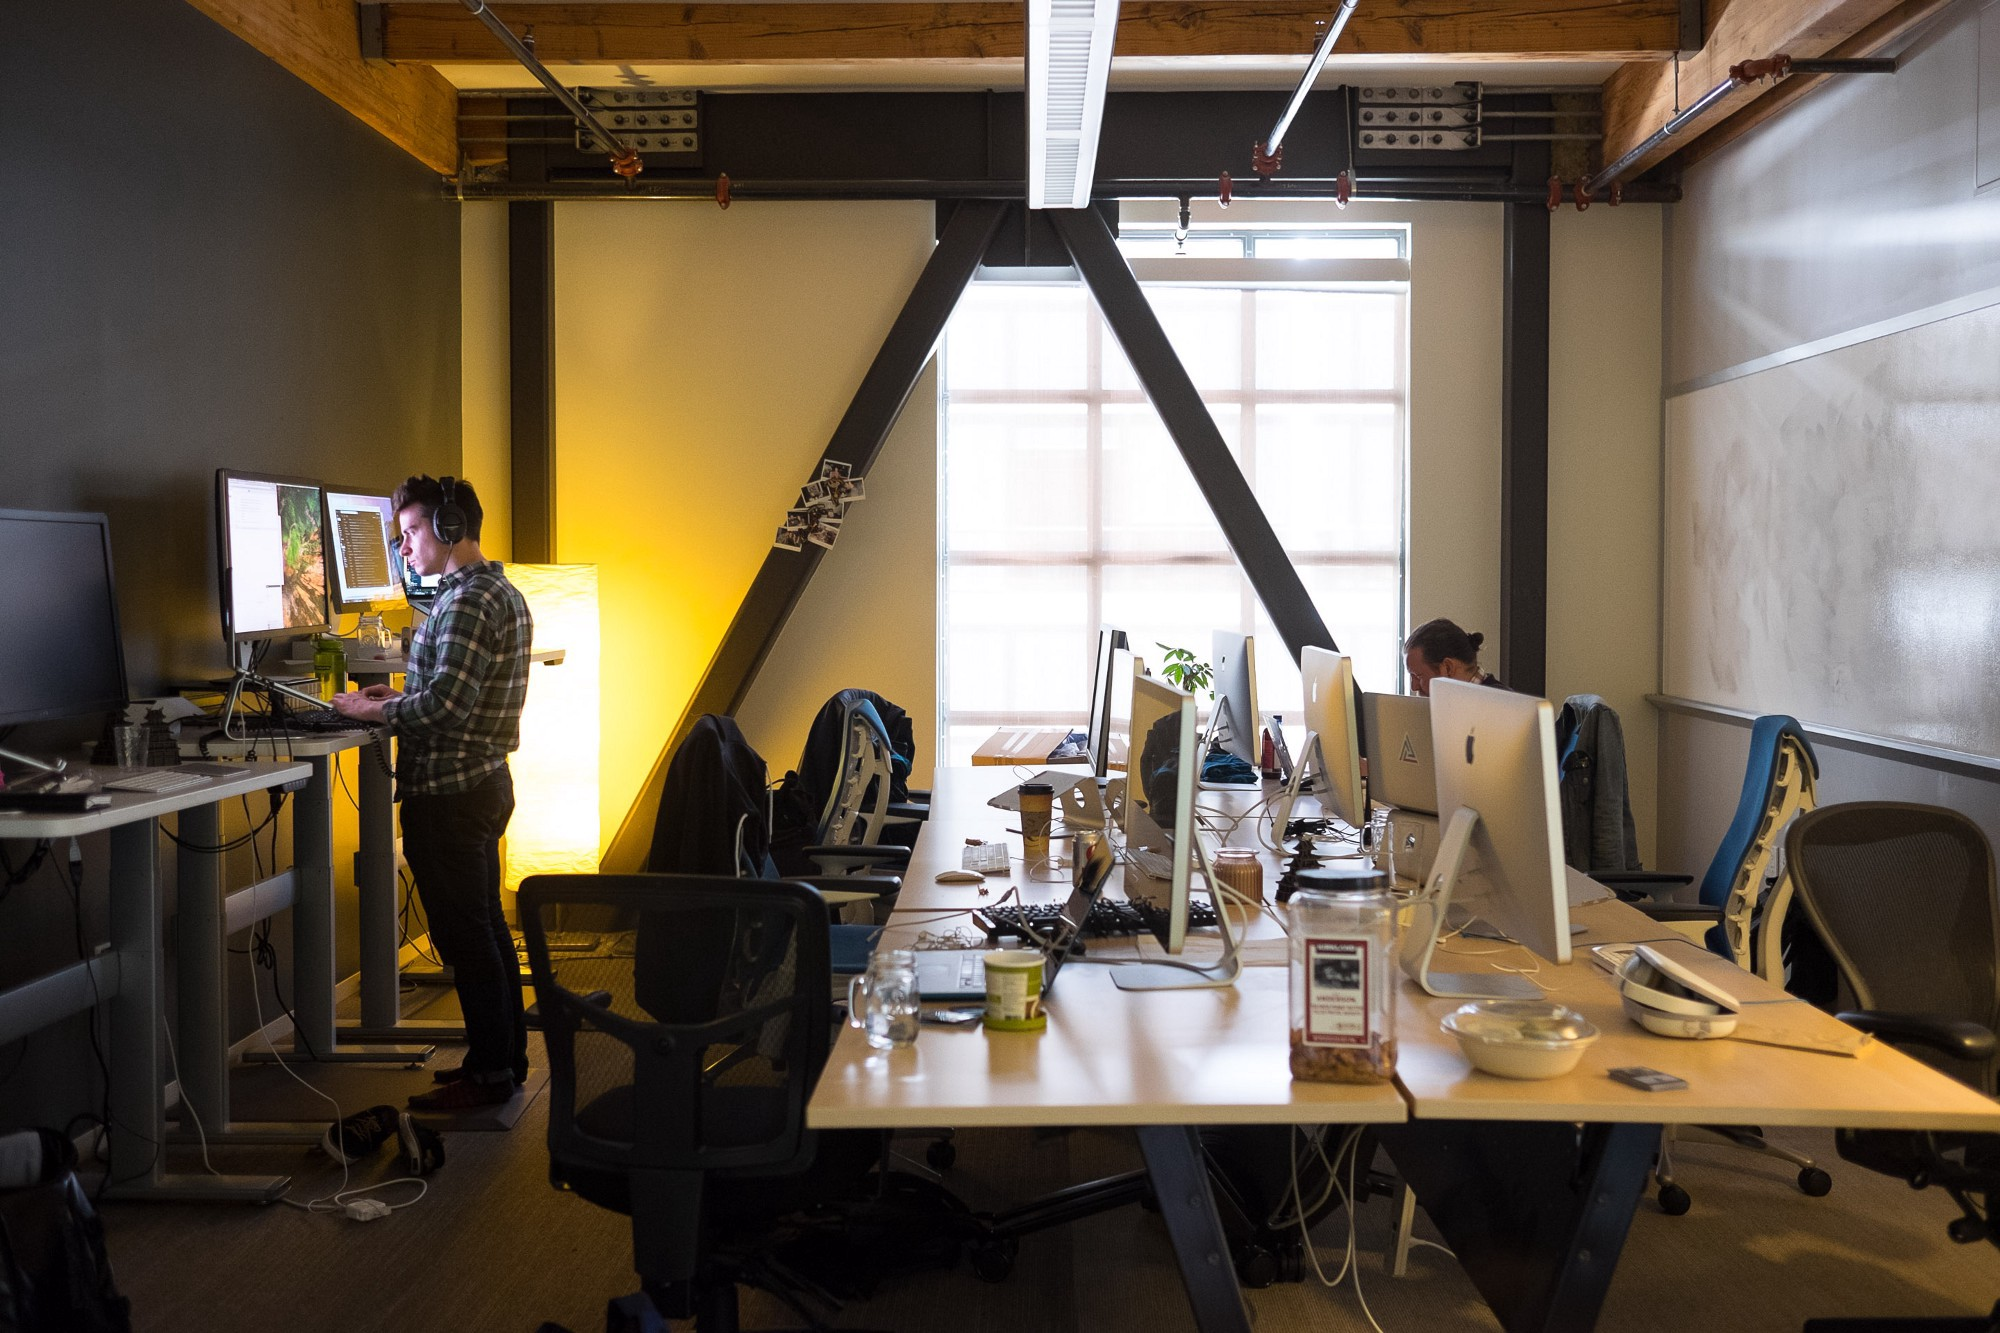 6 Questions for Startups to Ask Themselves Before Hiring Bootcamp Grads